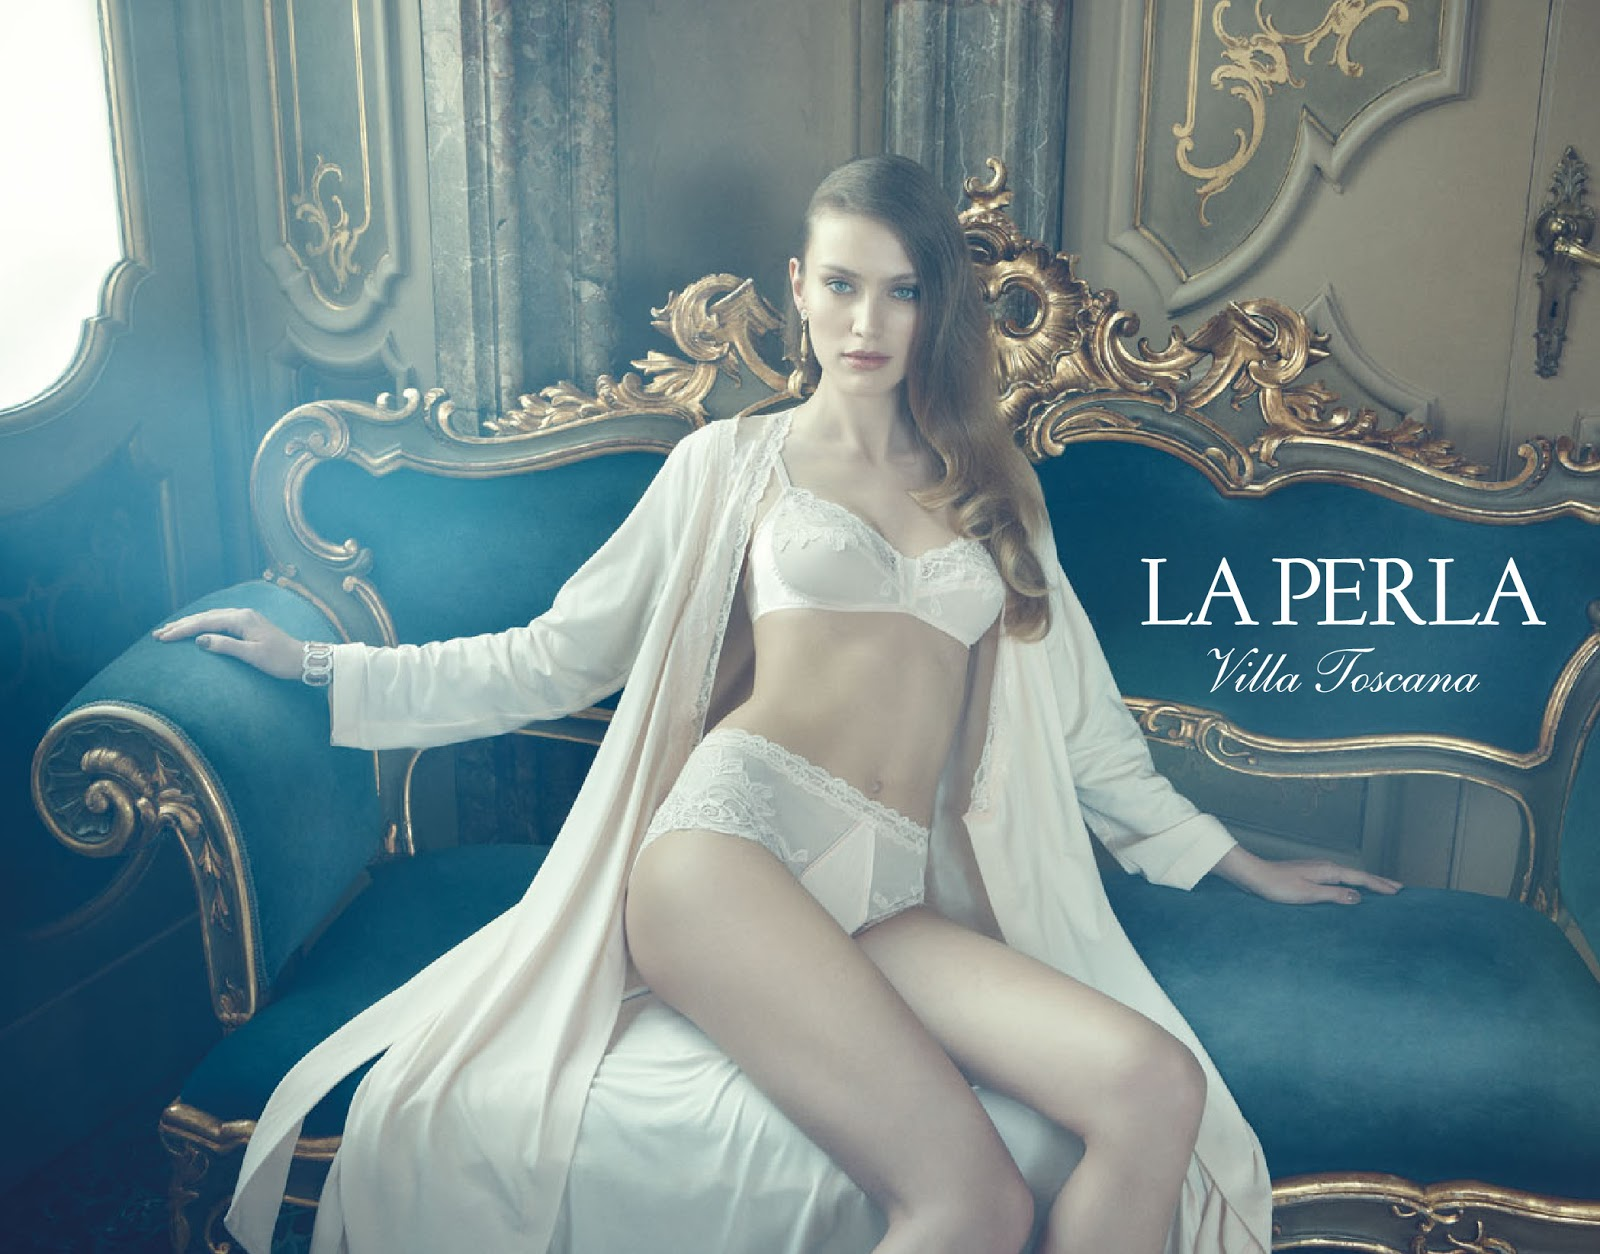 La Perla Villa Tocana Collection FW 2012/2013 | Adriano Russo | La Perla | Numerique Retouch Photo Retouching Studio